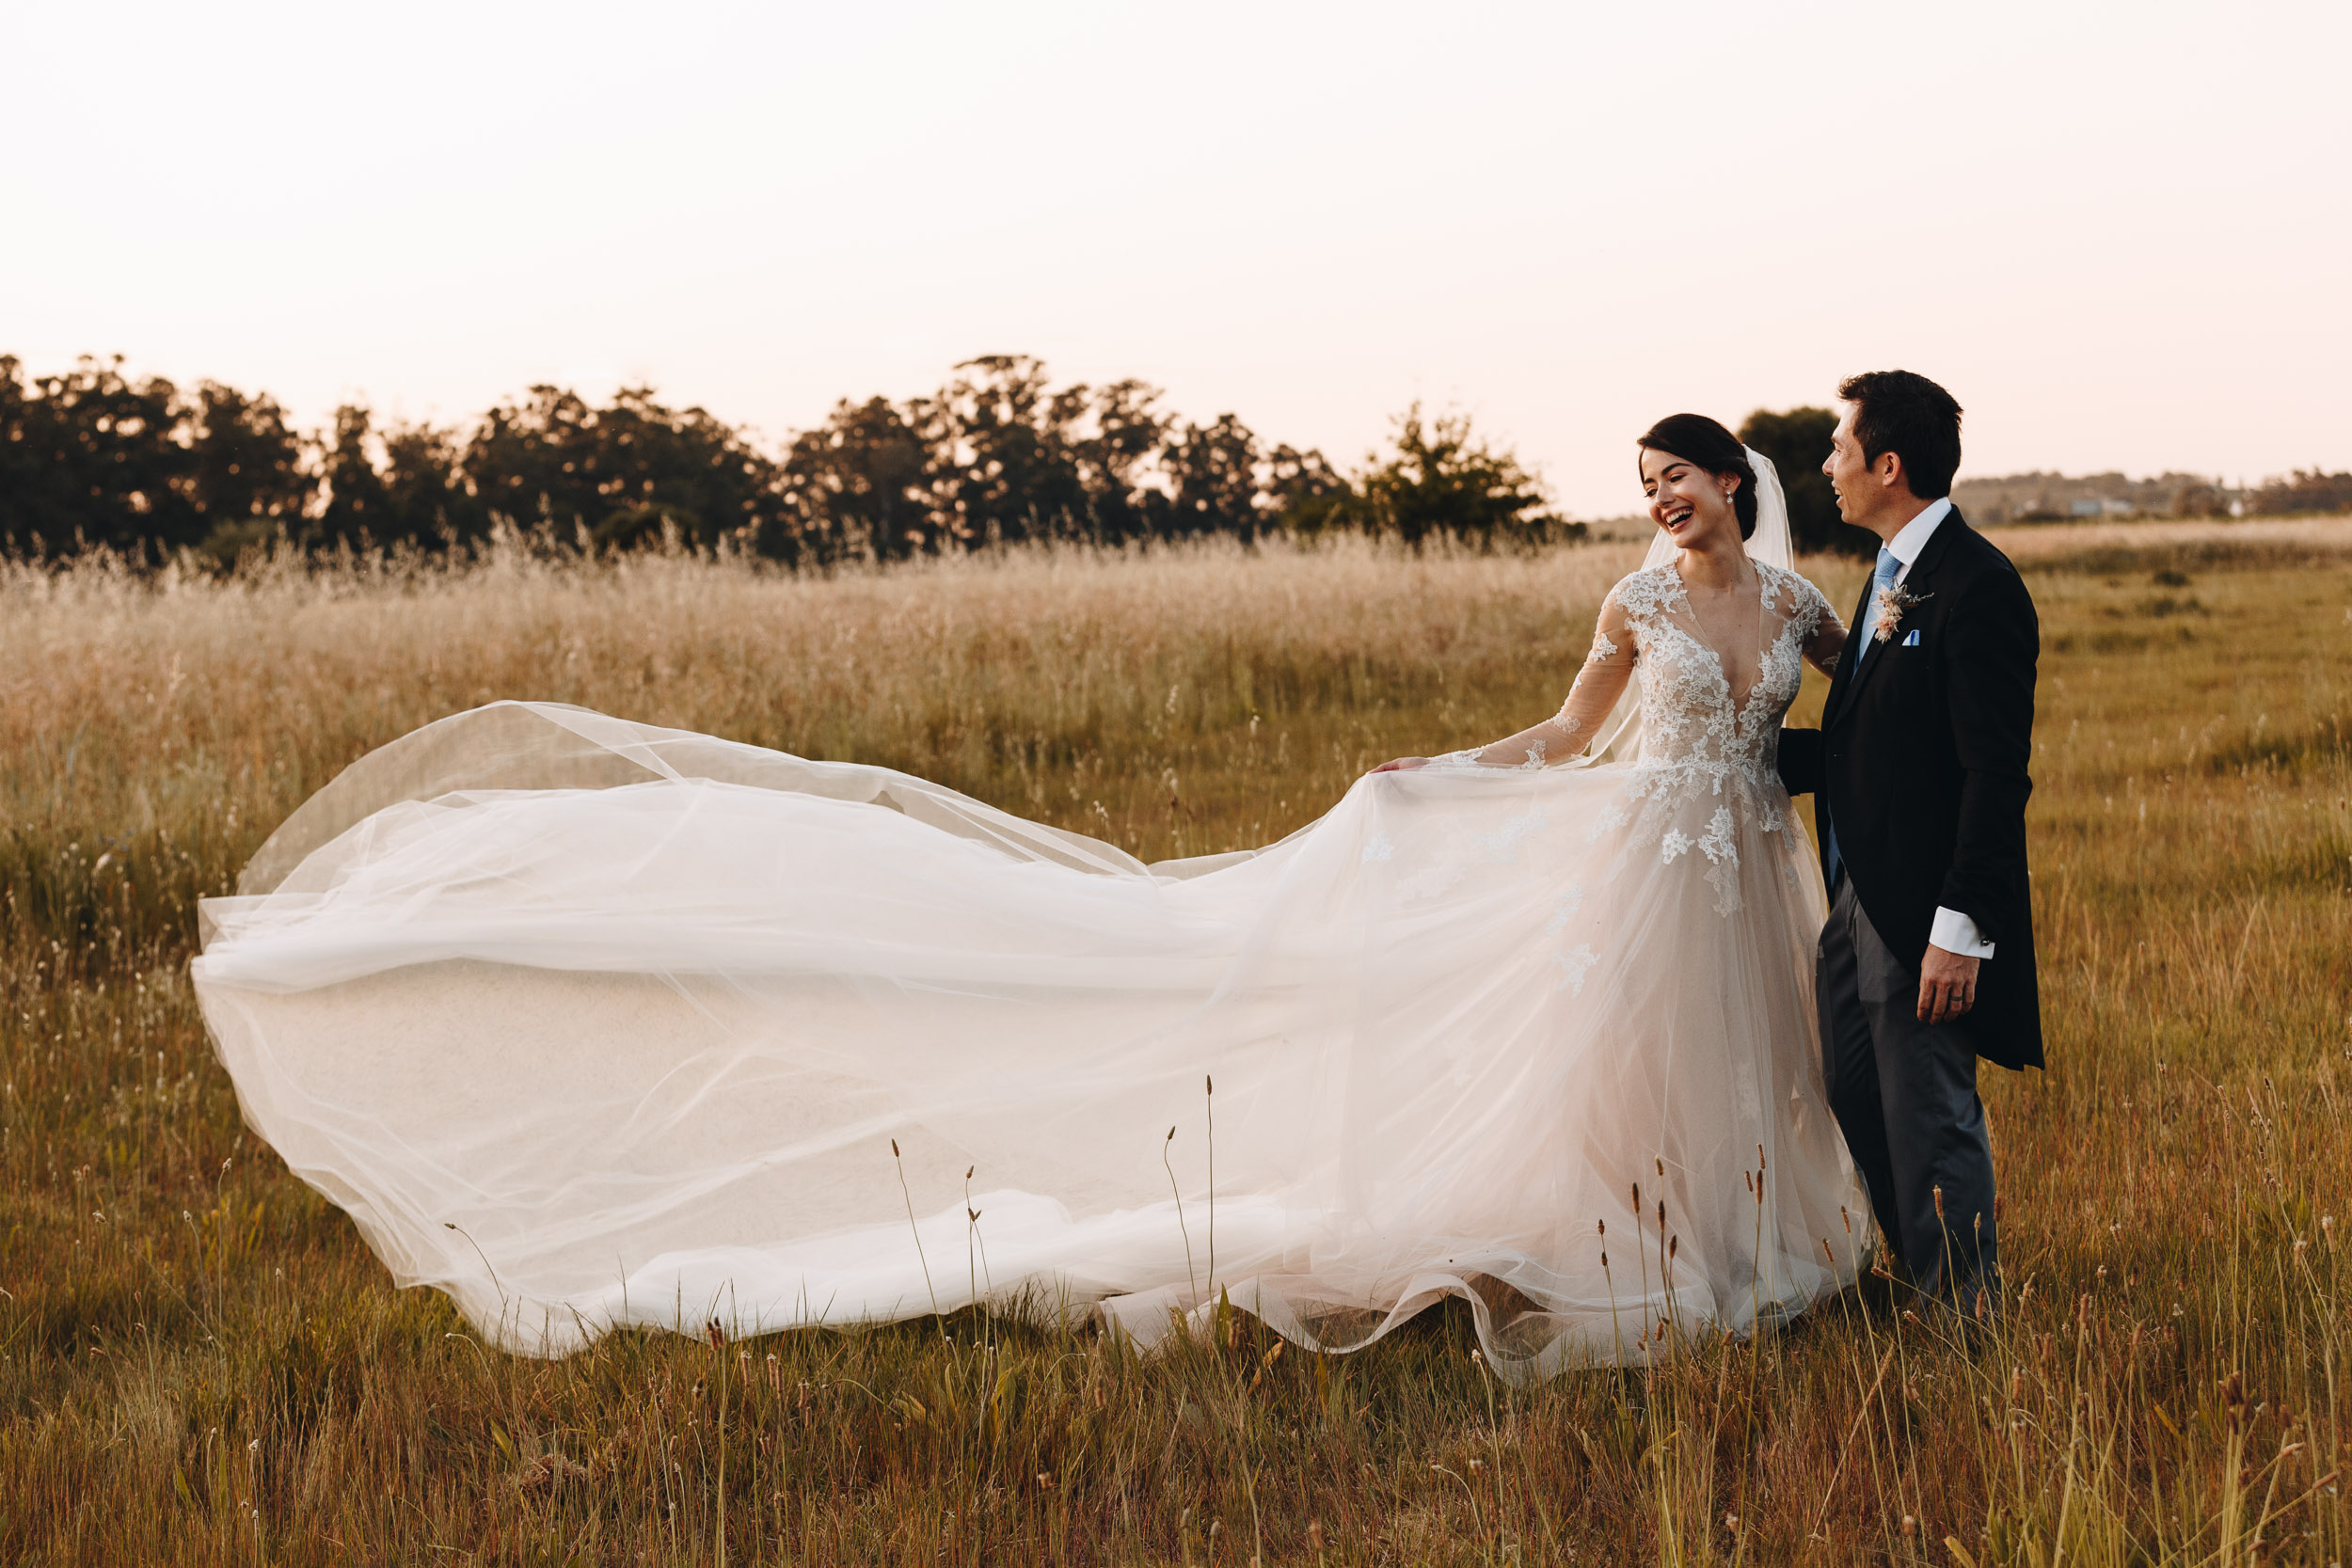 Jenny-Rockett-John-Scranton-Cape-Town-Wedding-Photographer-Andrea-Kellan-177.jpg